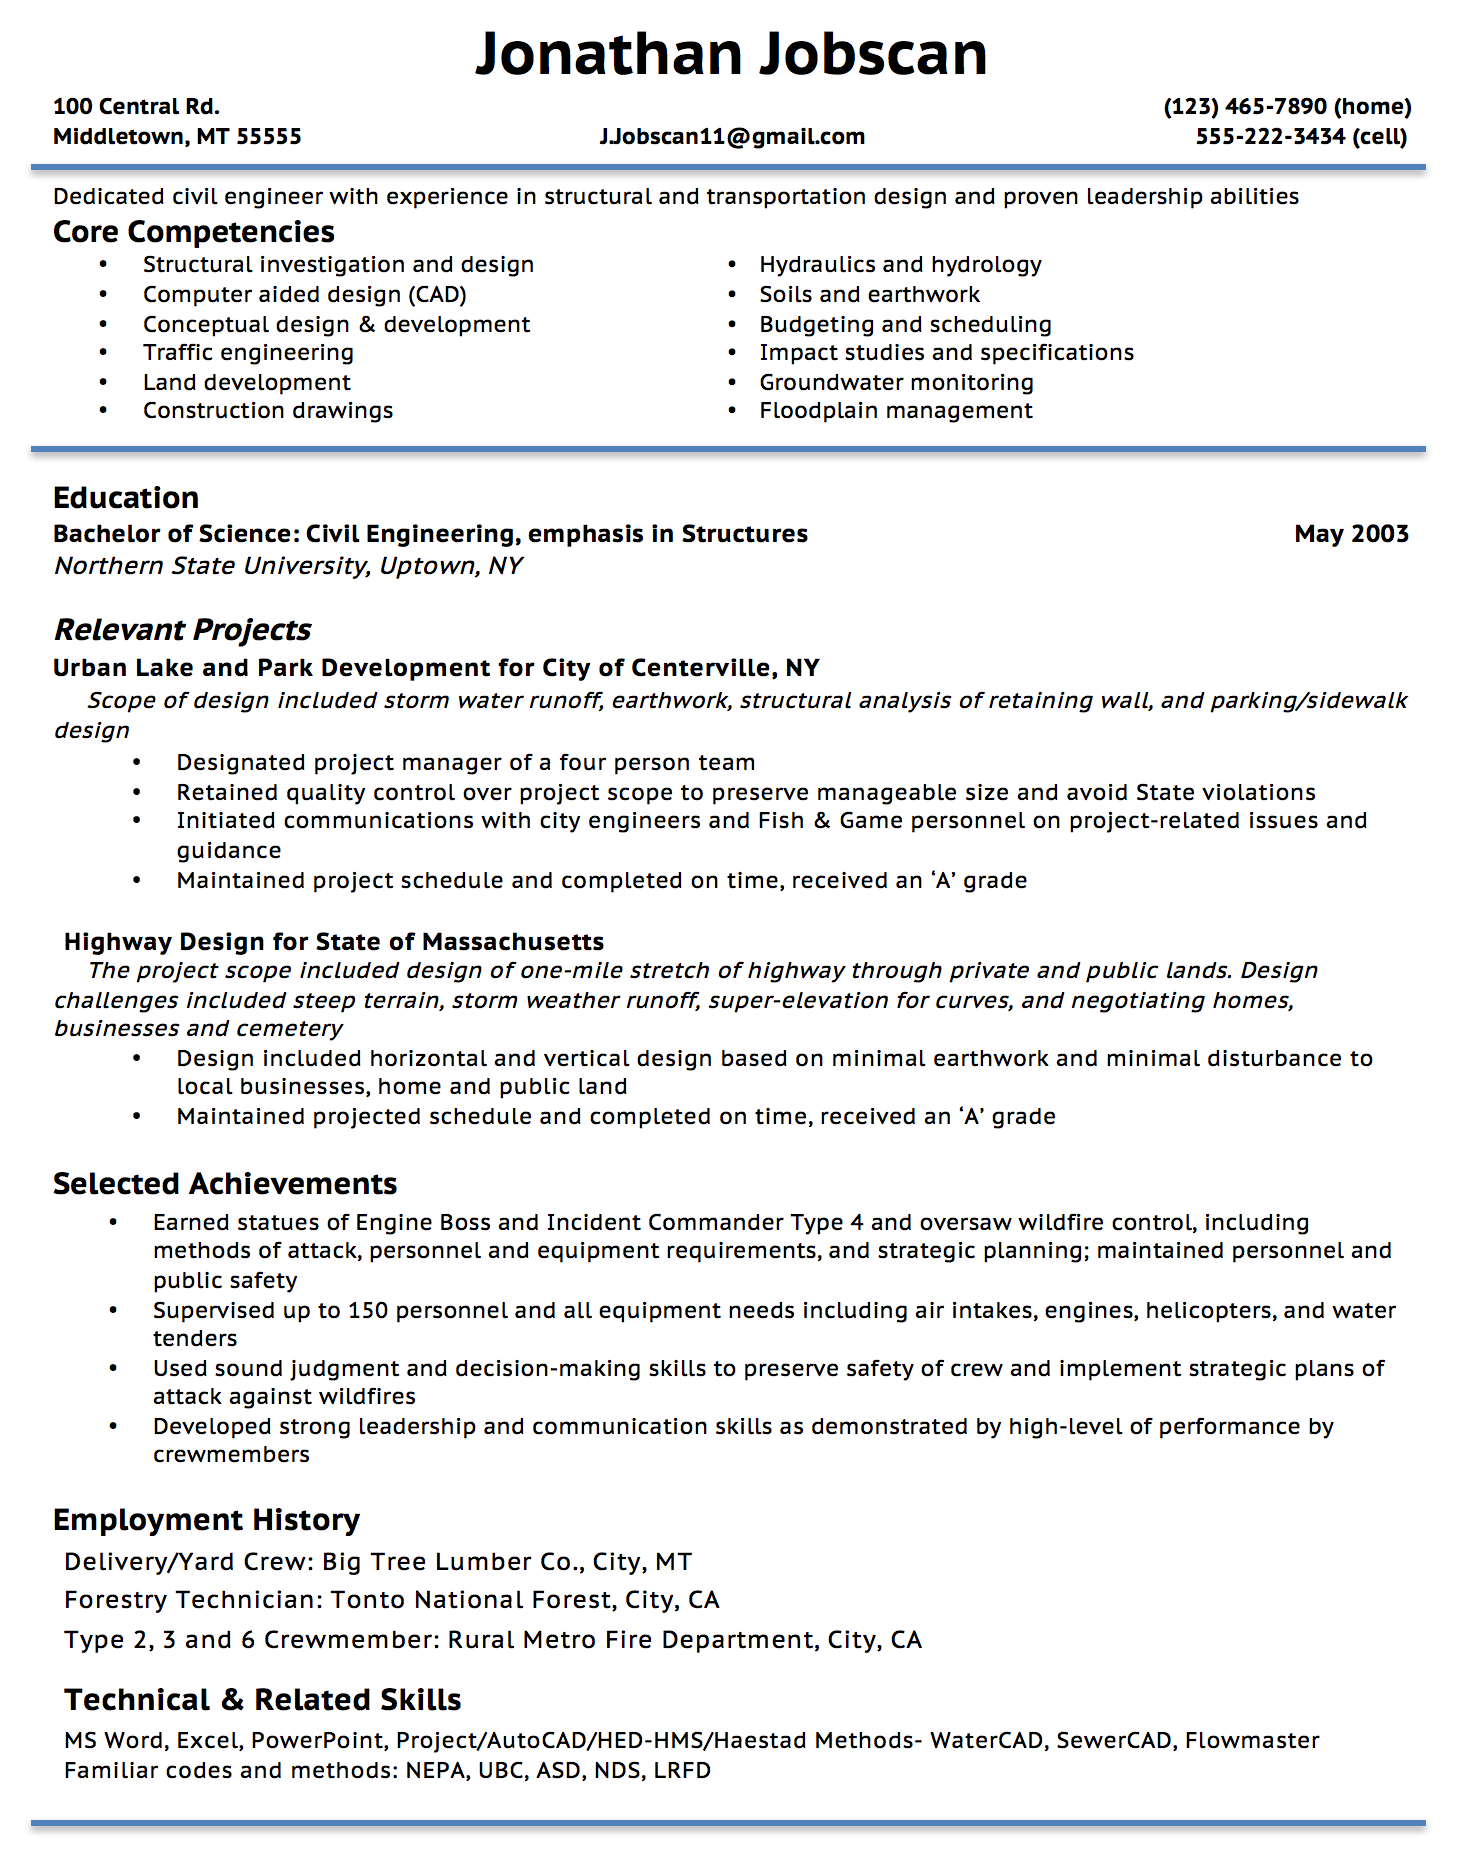 Opposenewapstandardsus  Splendid Resume Writing Guide  Jobscan With Glamorous Example Of A Functional Resume Format With Enchanting How To Write References In A Resume Also Sheryl Sandberg Resume In Addition Cover Page Example For Resume And Do You Need A Cover Letter For Your Resume As Well As Standard Resume Font Additionally Cleaning Services Resume From Jobscanco With Opposenewapstandardsus  Glamorous Resume Writing Guide  Jobscan With Enchanting Example Of A Functional Resume Format And Splendid How To Write References In A Resume Also Sheryl Sandberg Resume In Addition Cover Page Example For Resume From Jobscanco